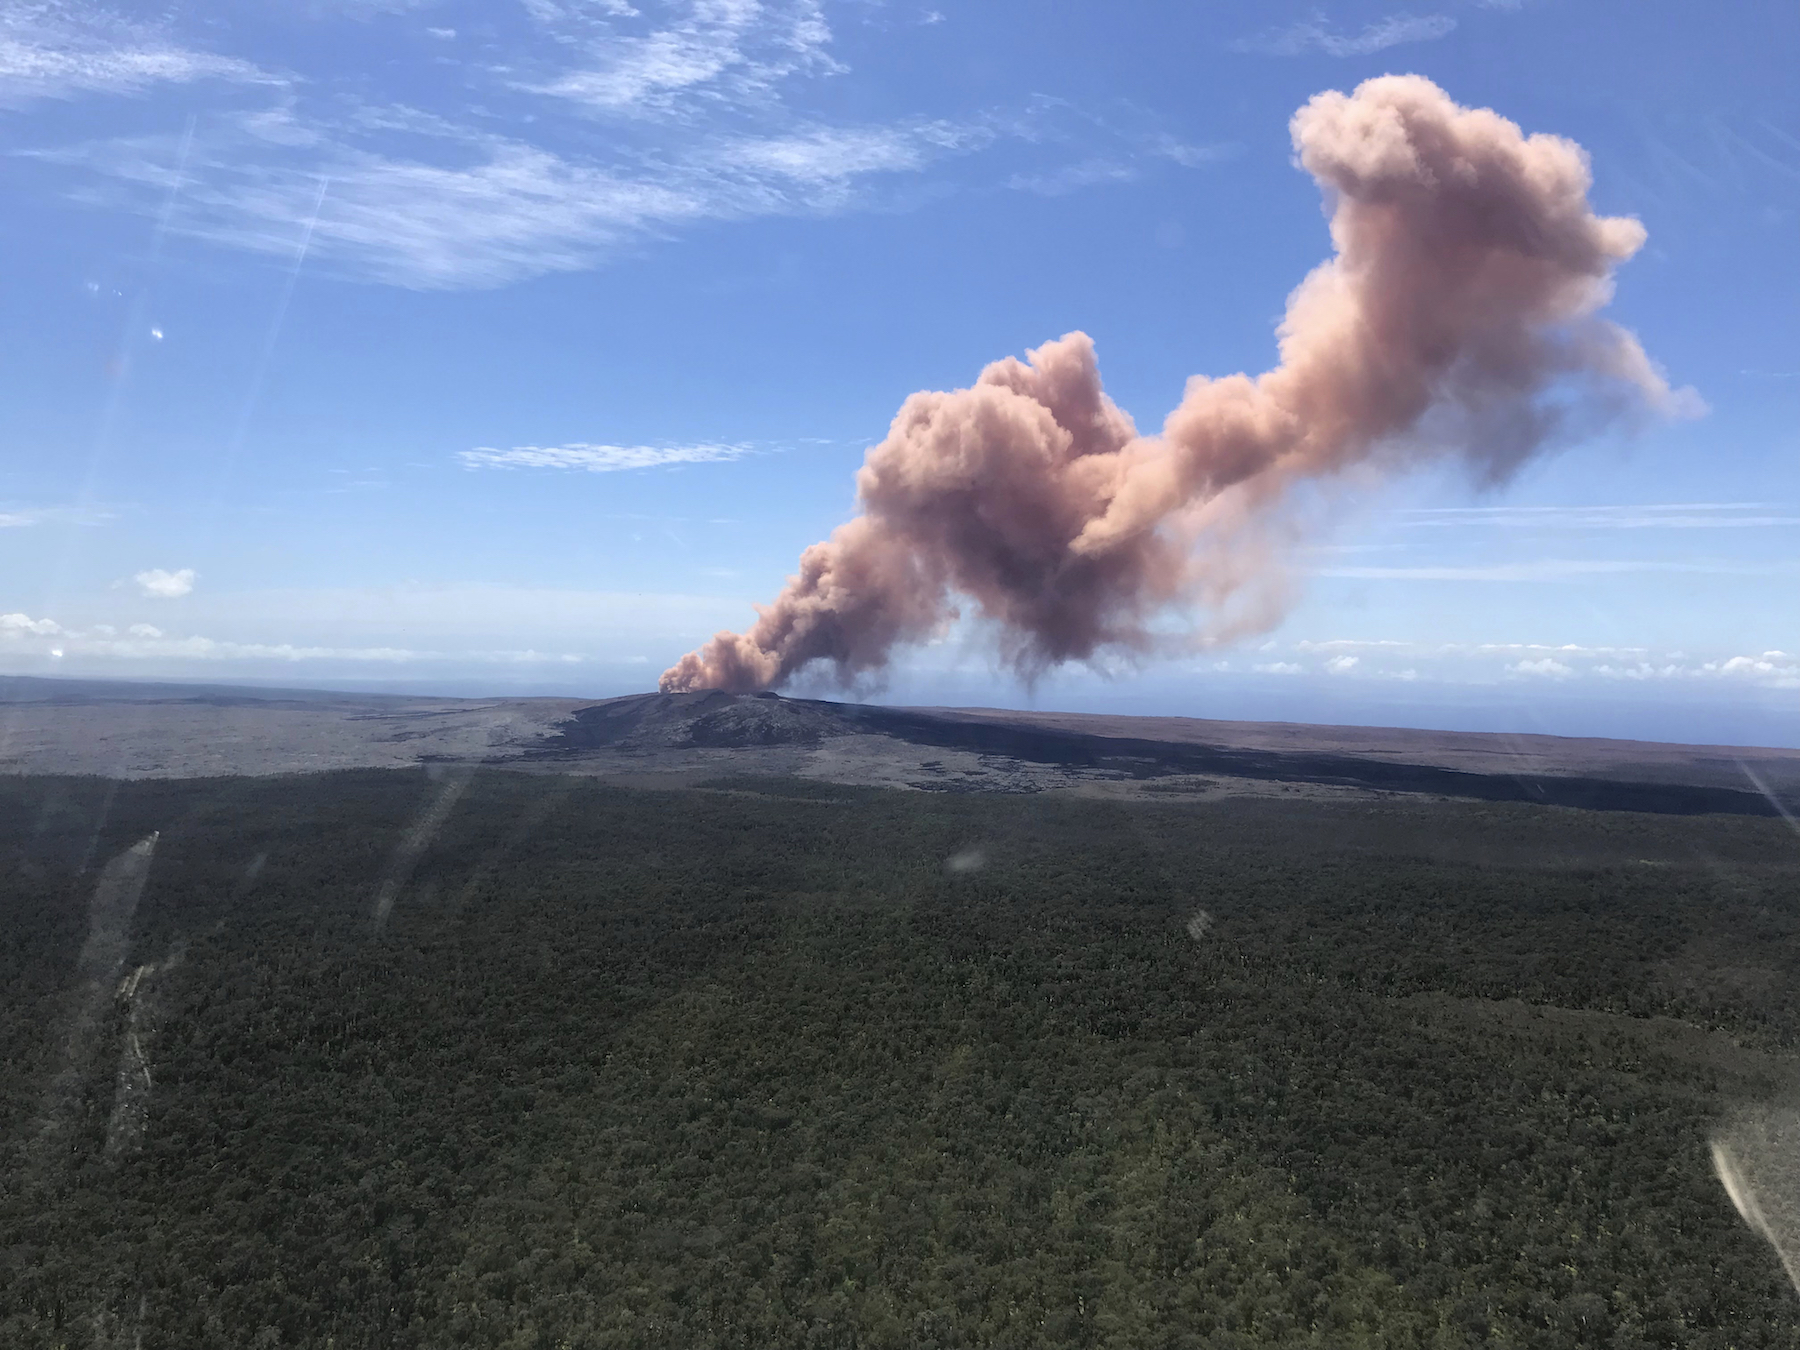 "<div class=""meta image-caption""><div class=""origin-logo origin-image ap""><span>AP</span></div><span class=""caption-text"">In this photo released by U.S. Geological Survey, ash plume rises above the Puu Oo vent, on Hawaii's Kilauea Volcano Thursday, May 3, 2018, in Hawaii Volcanoes National Park. (USGS/AP)</span></div>"